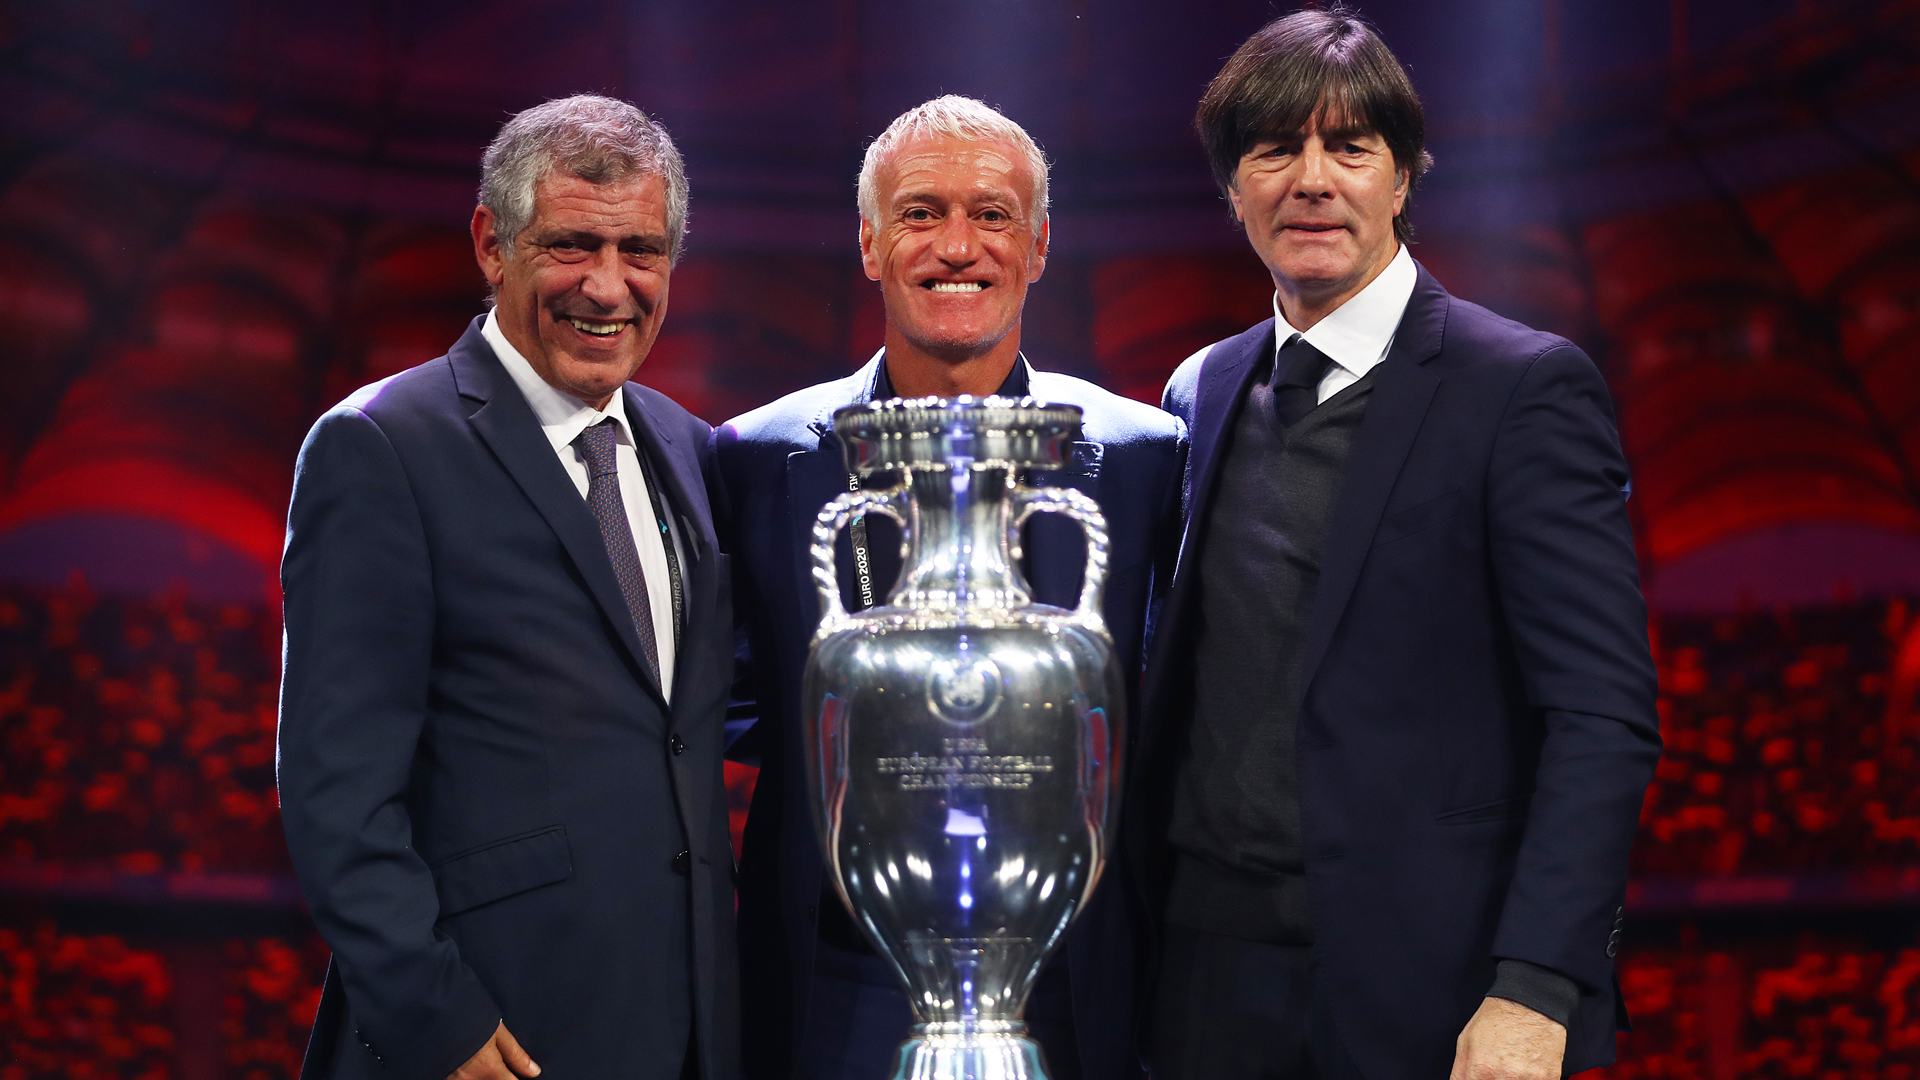 Euro 2020 draw: Deschamps ready for test, Low feels joy about 'group of death'